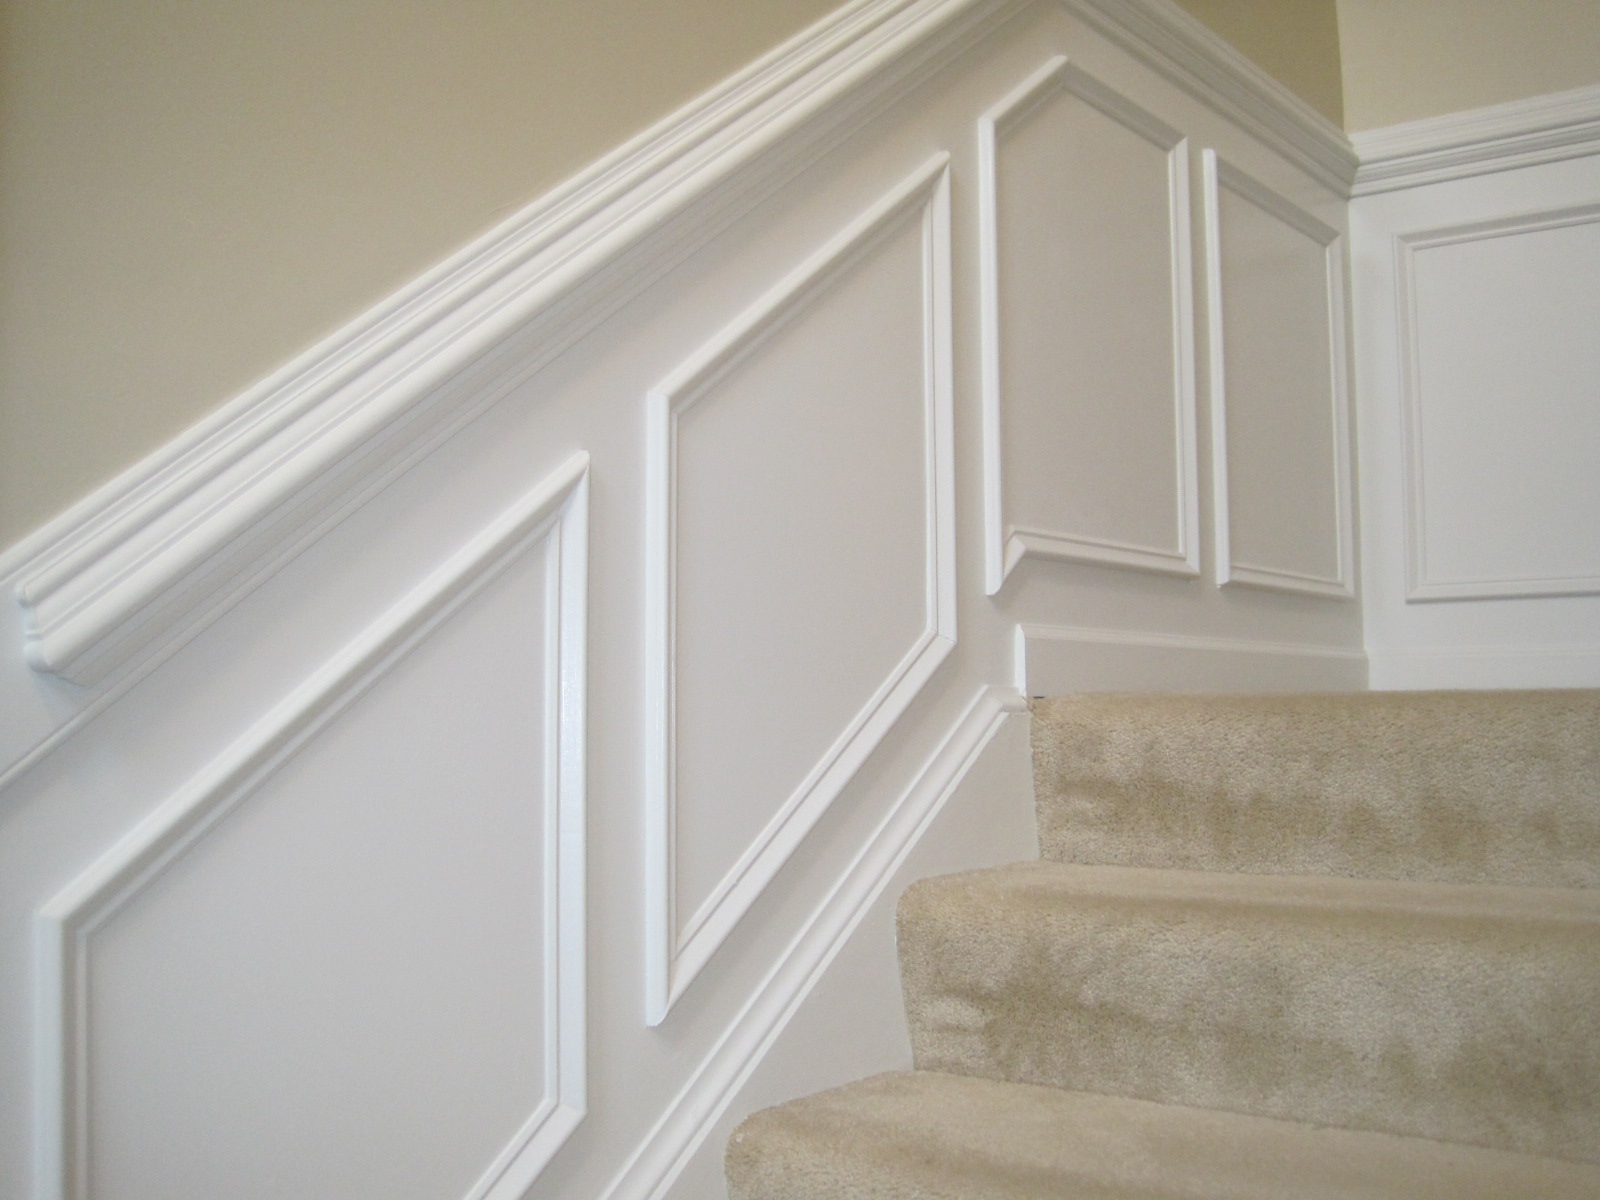 Elegant White Installing Wainscoting Correctly (Image 4 of 10)